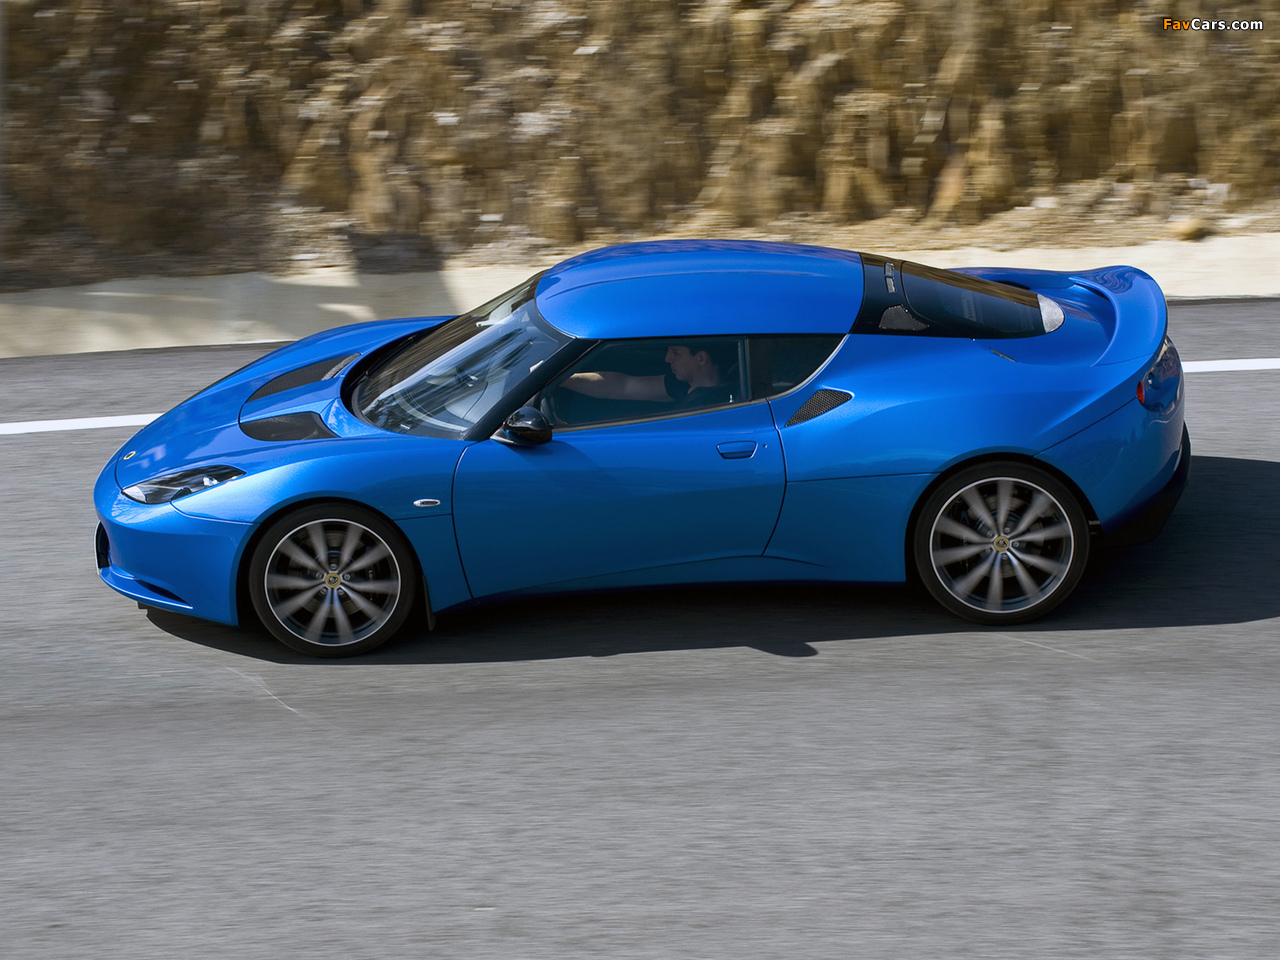 lotus evora s 2010 pictures 1280x960